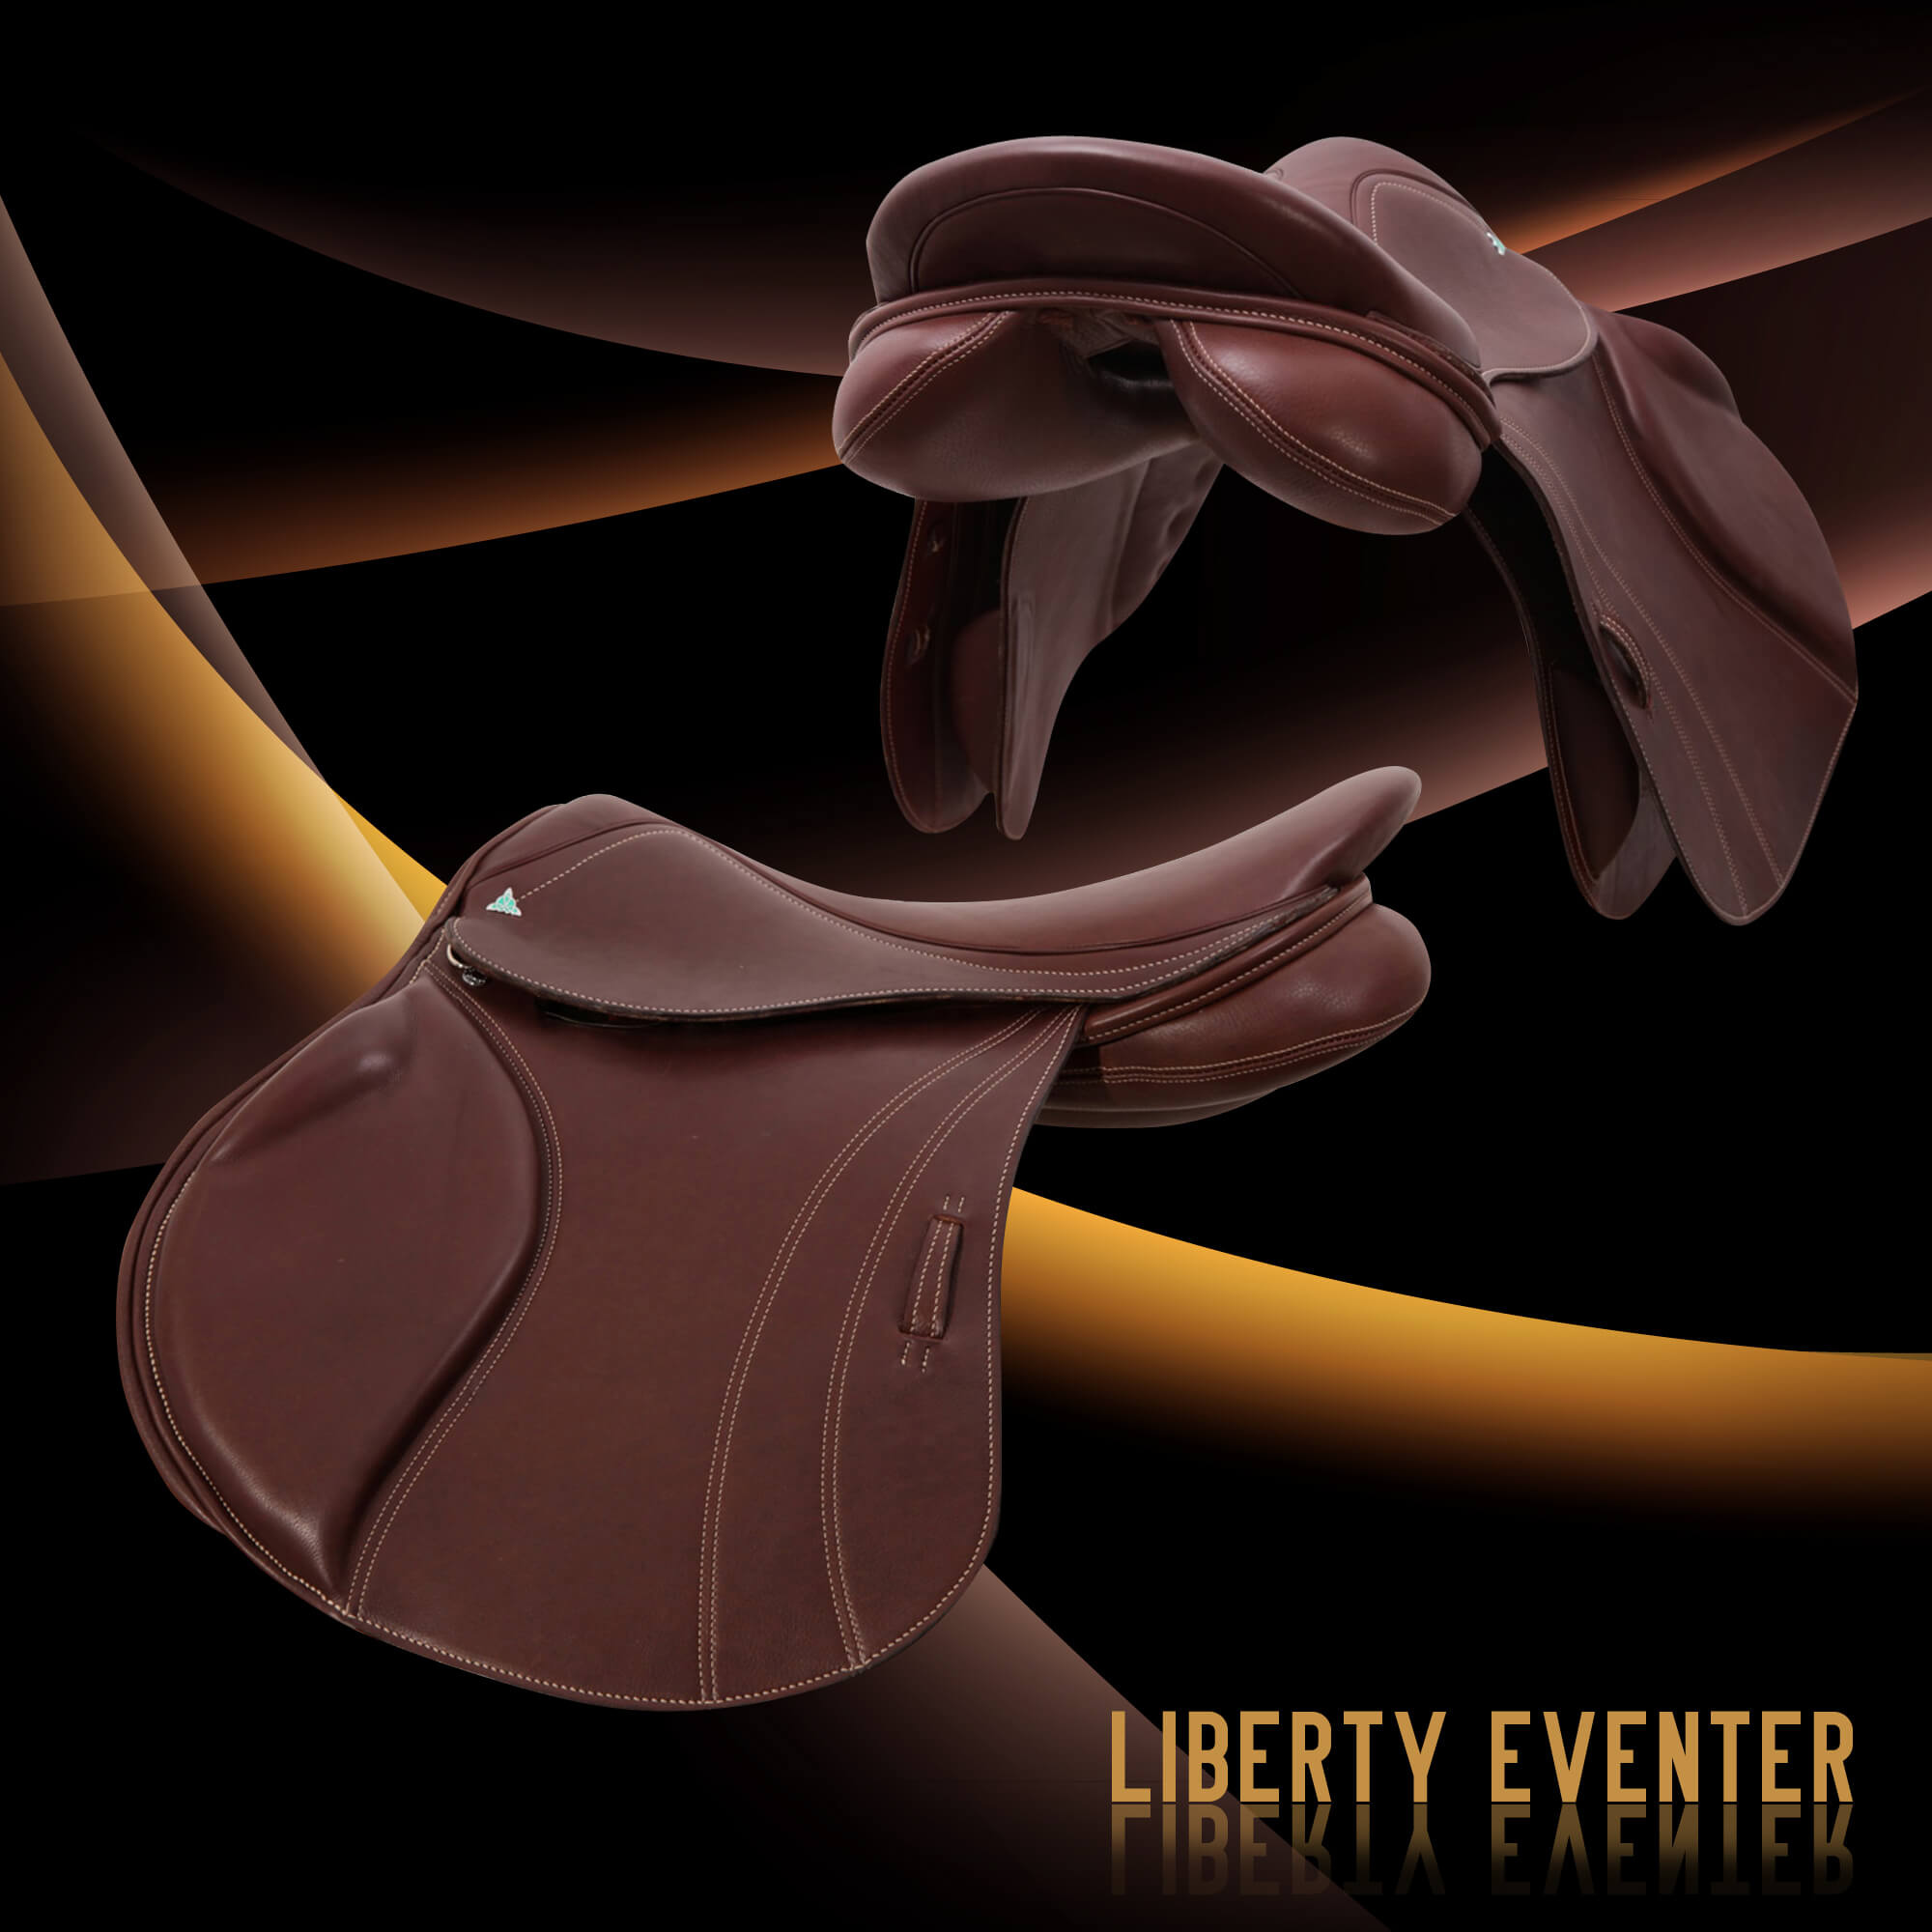 3 Bliss Liberty eventer saddle cocoa